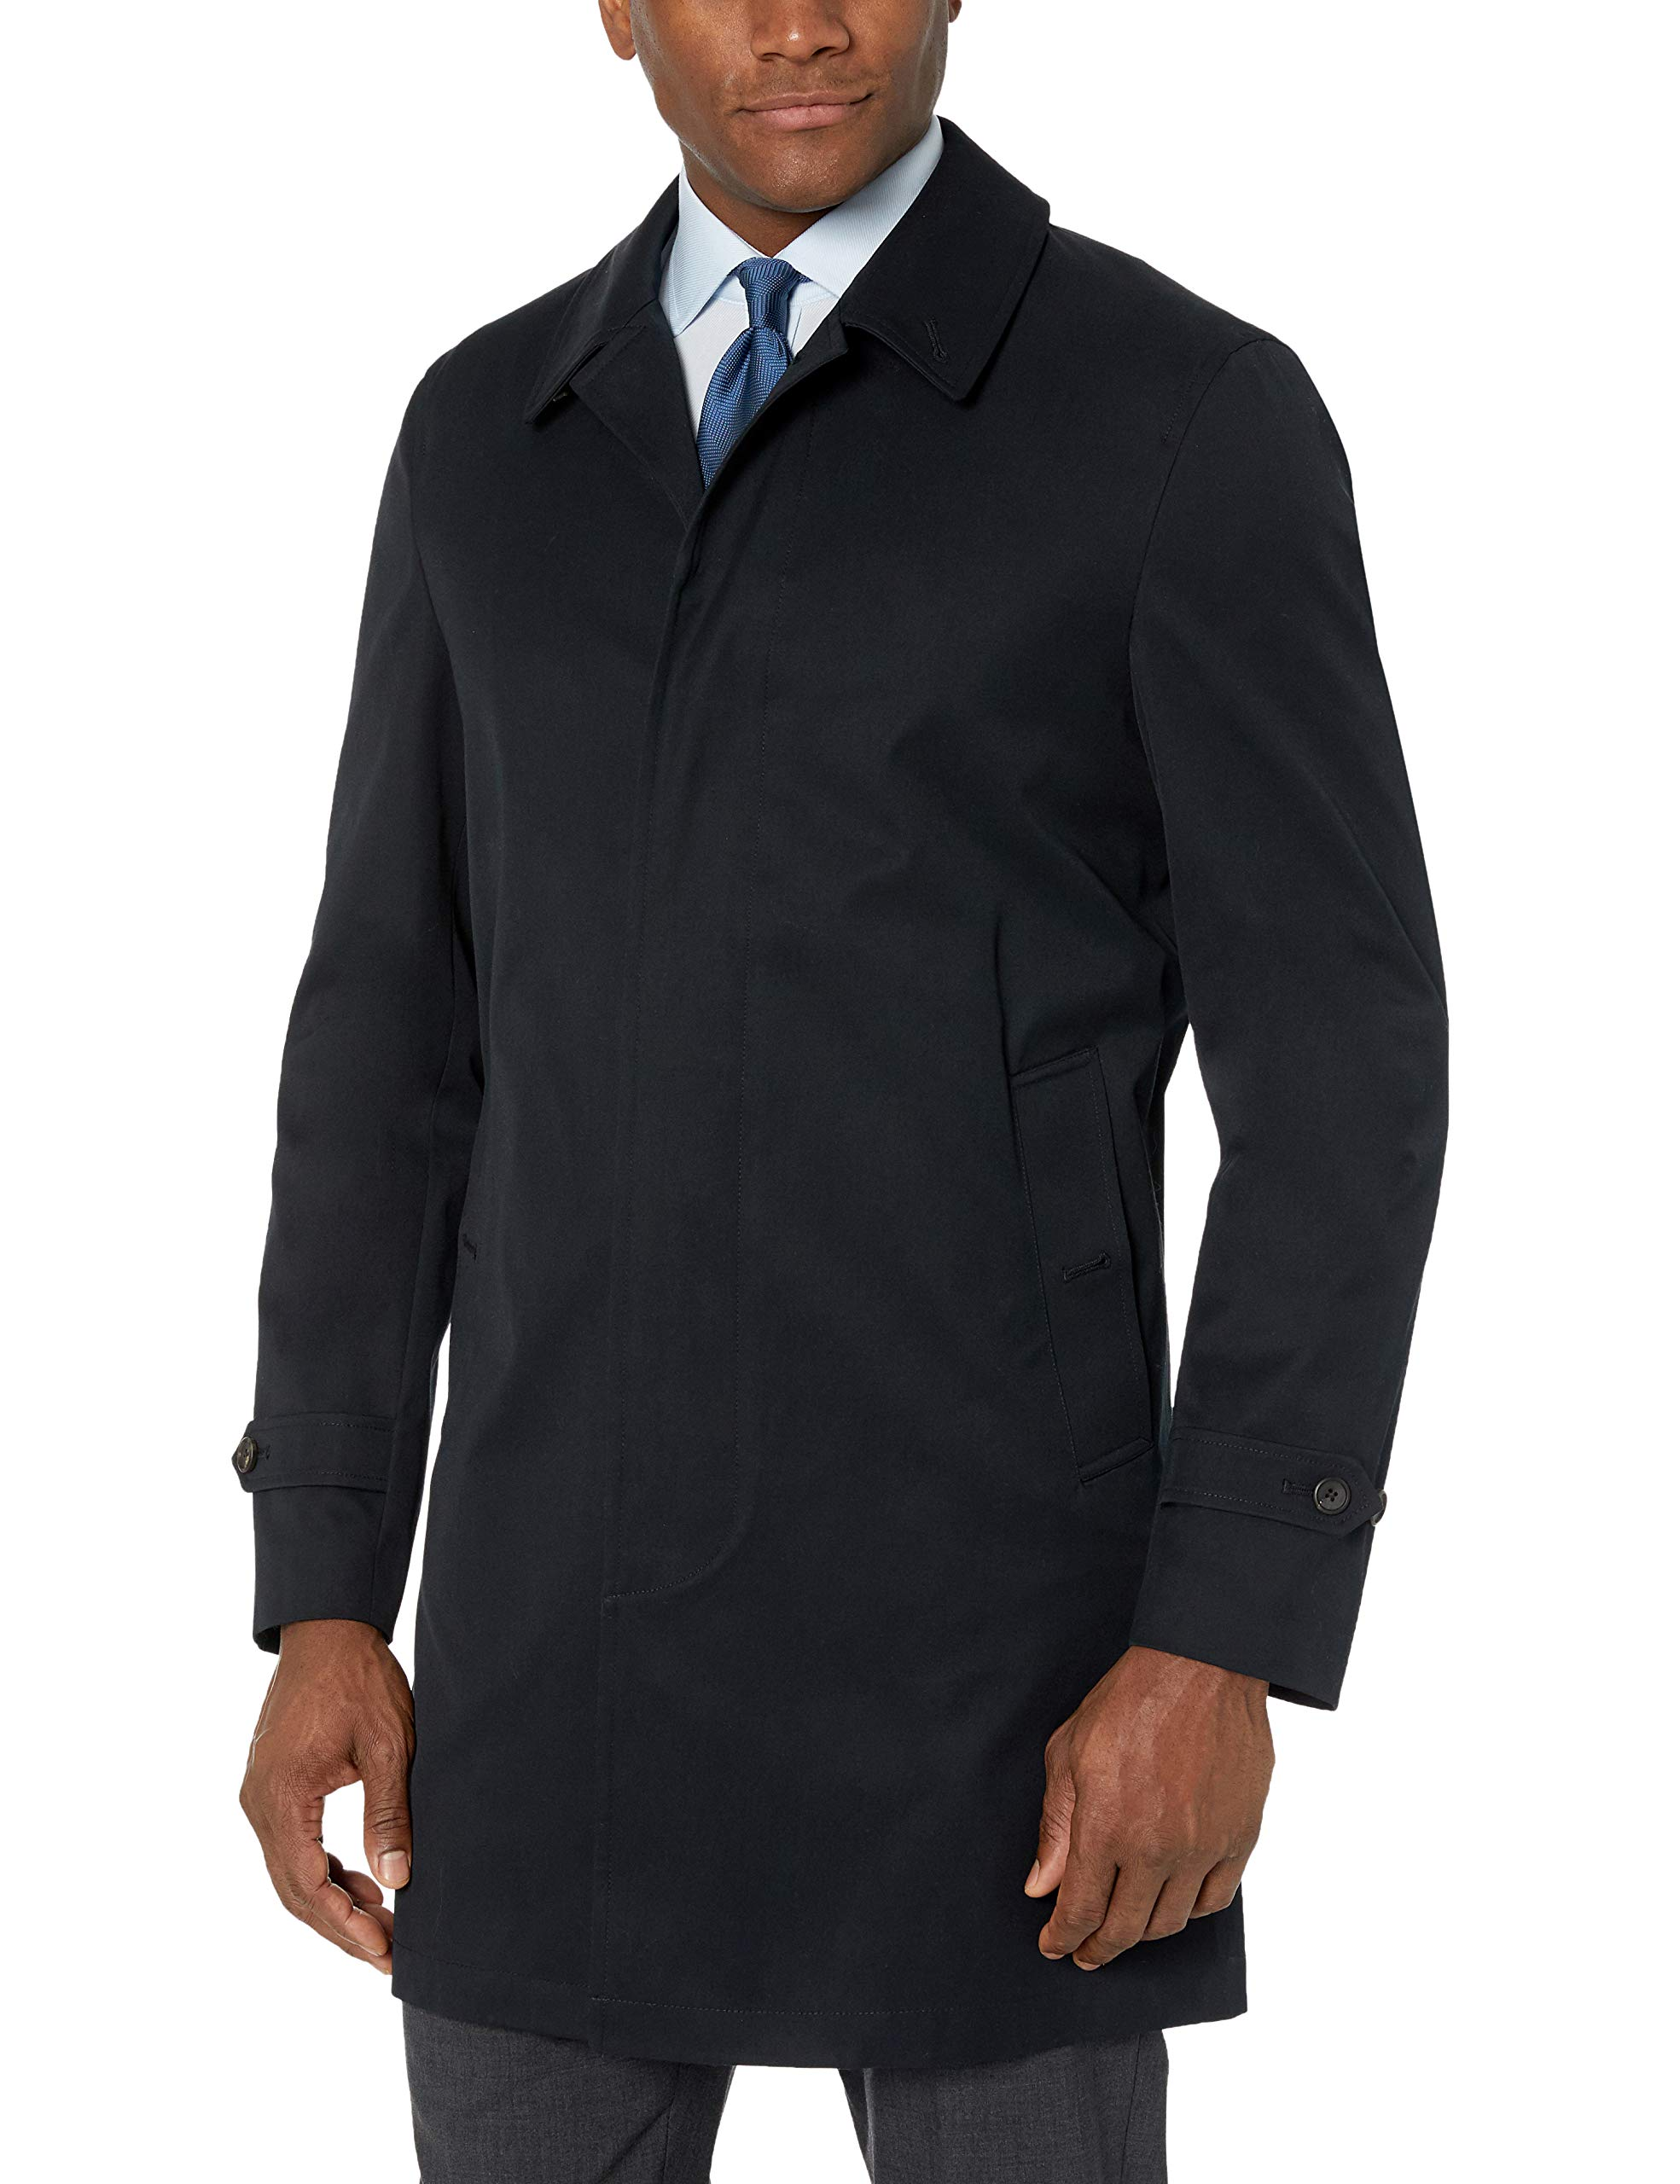 BUTTONED DOWN Men's Water-Repellant Cotton-Blend Car Coat, Black, 46 Regular by Buttoned Down